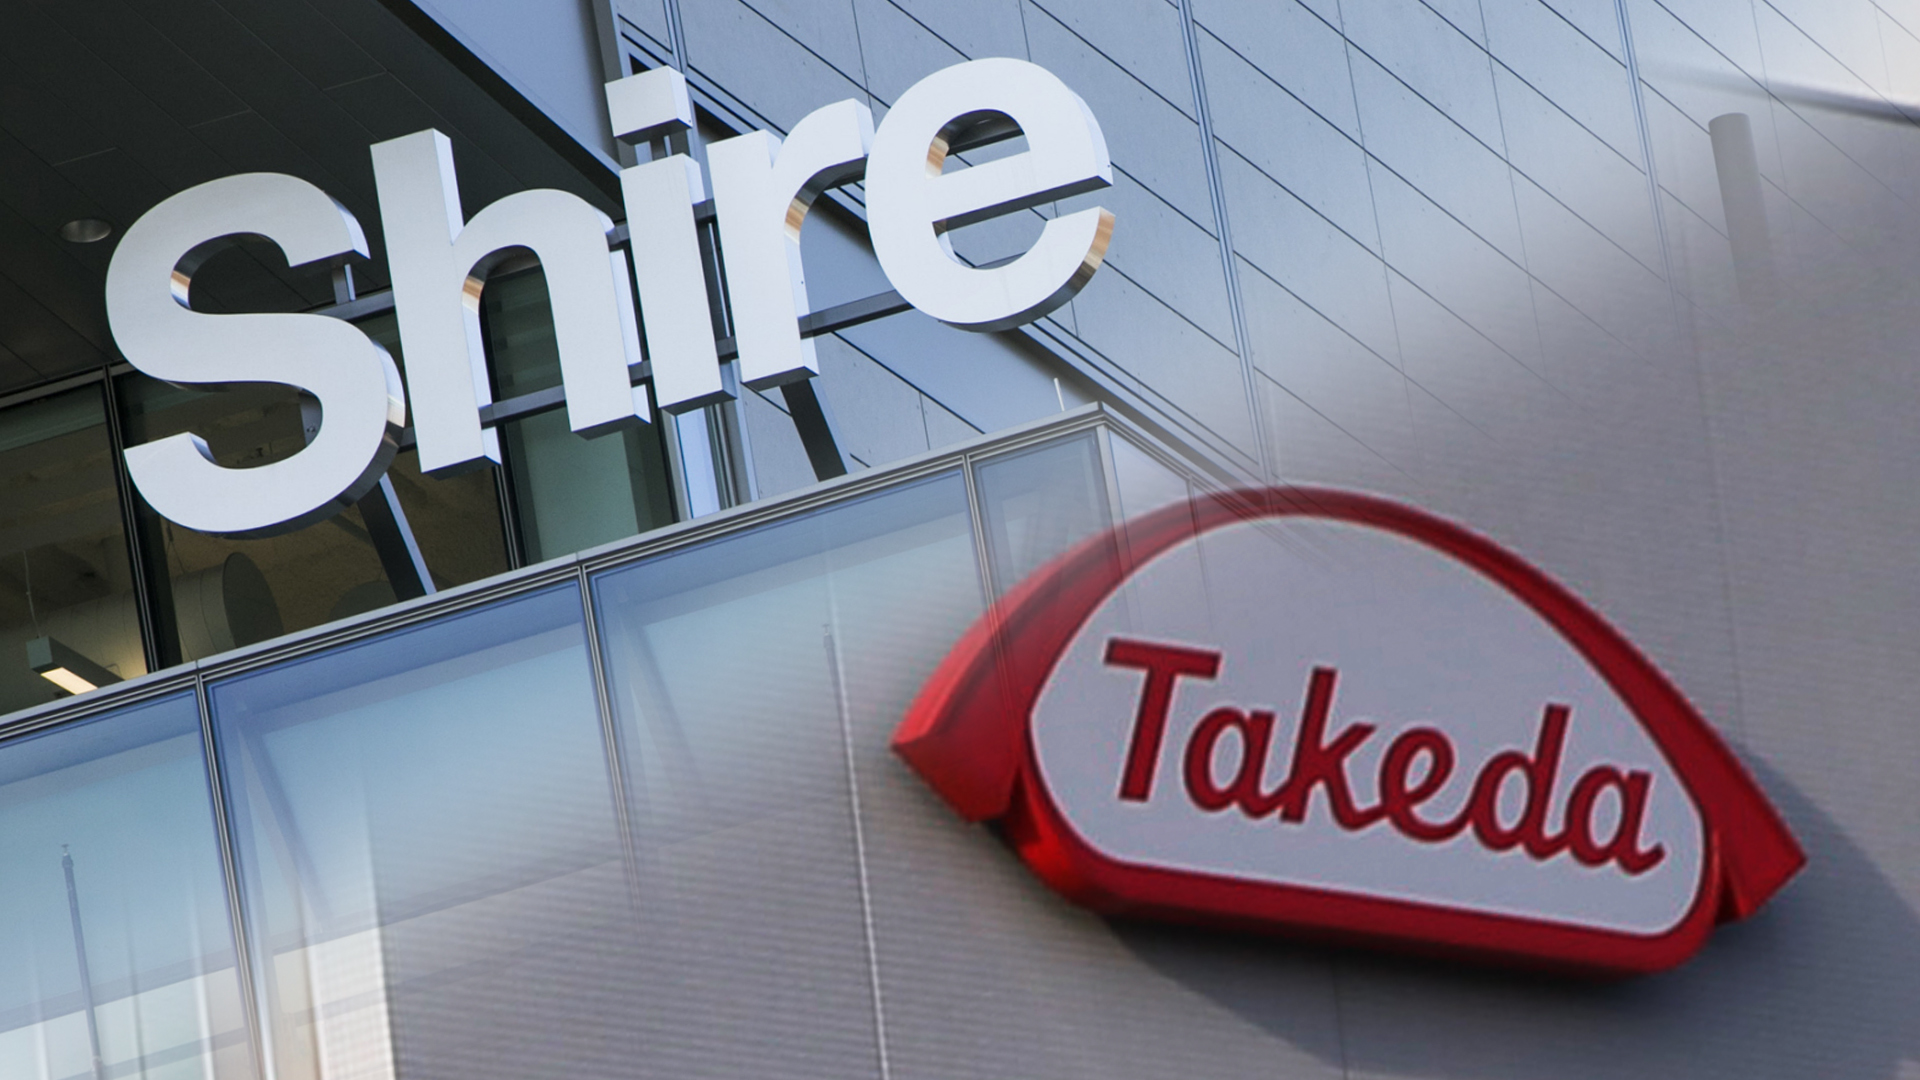 Takeda Shareholders Approve Resolutions Related to the